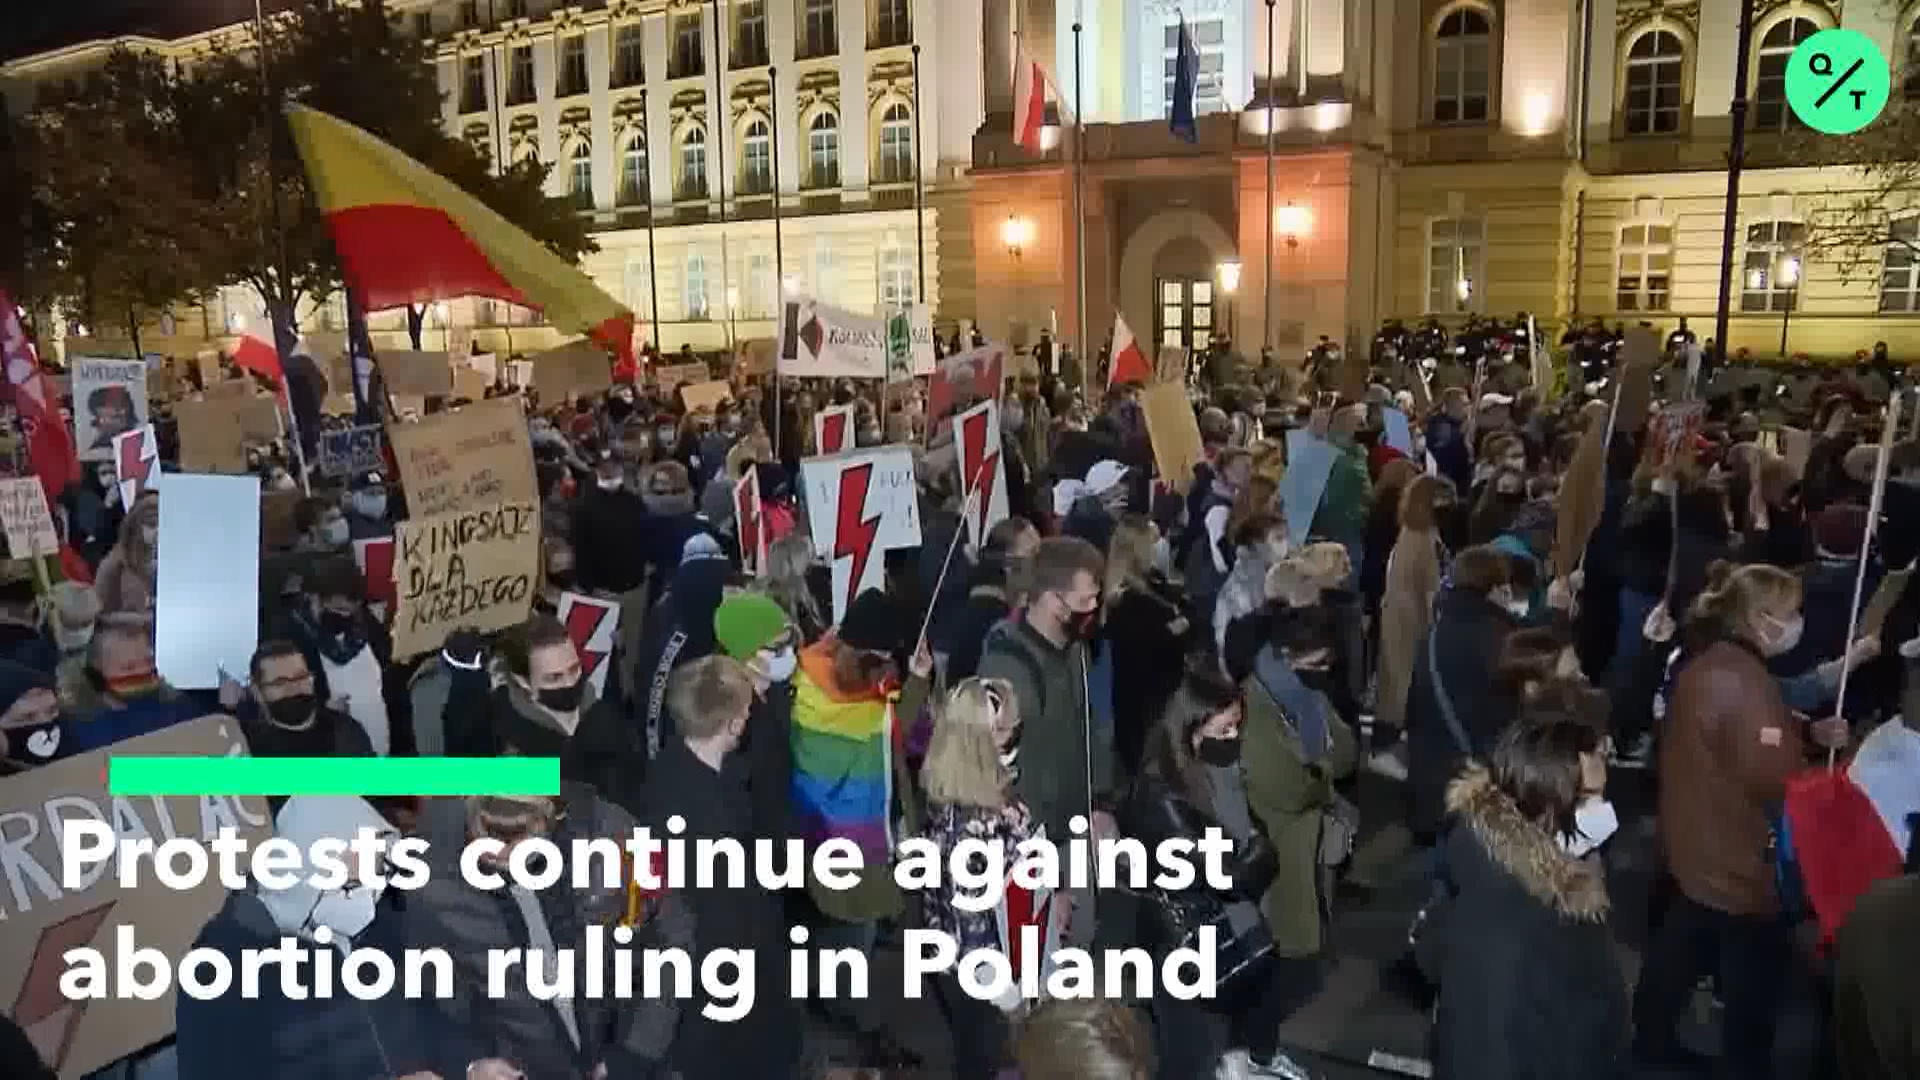 Poland Protests Against Abortion Ruling